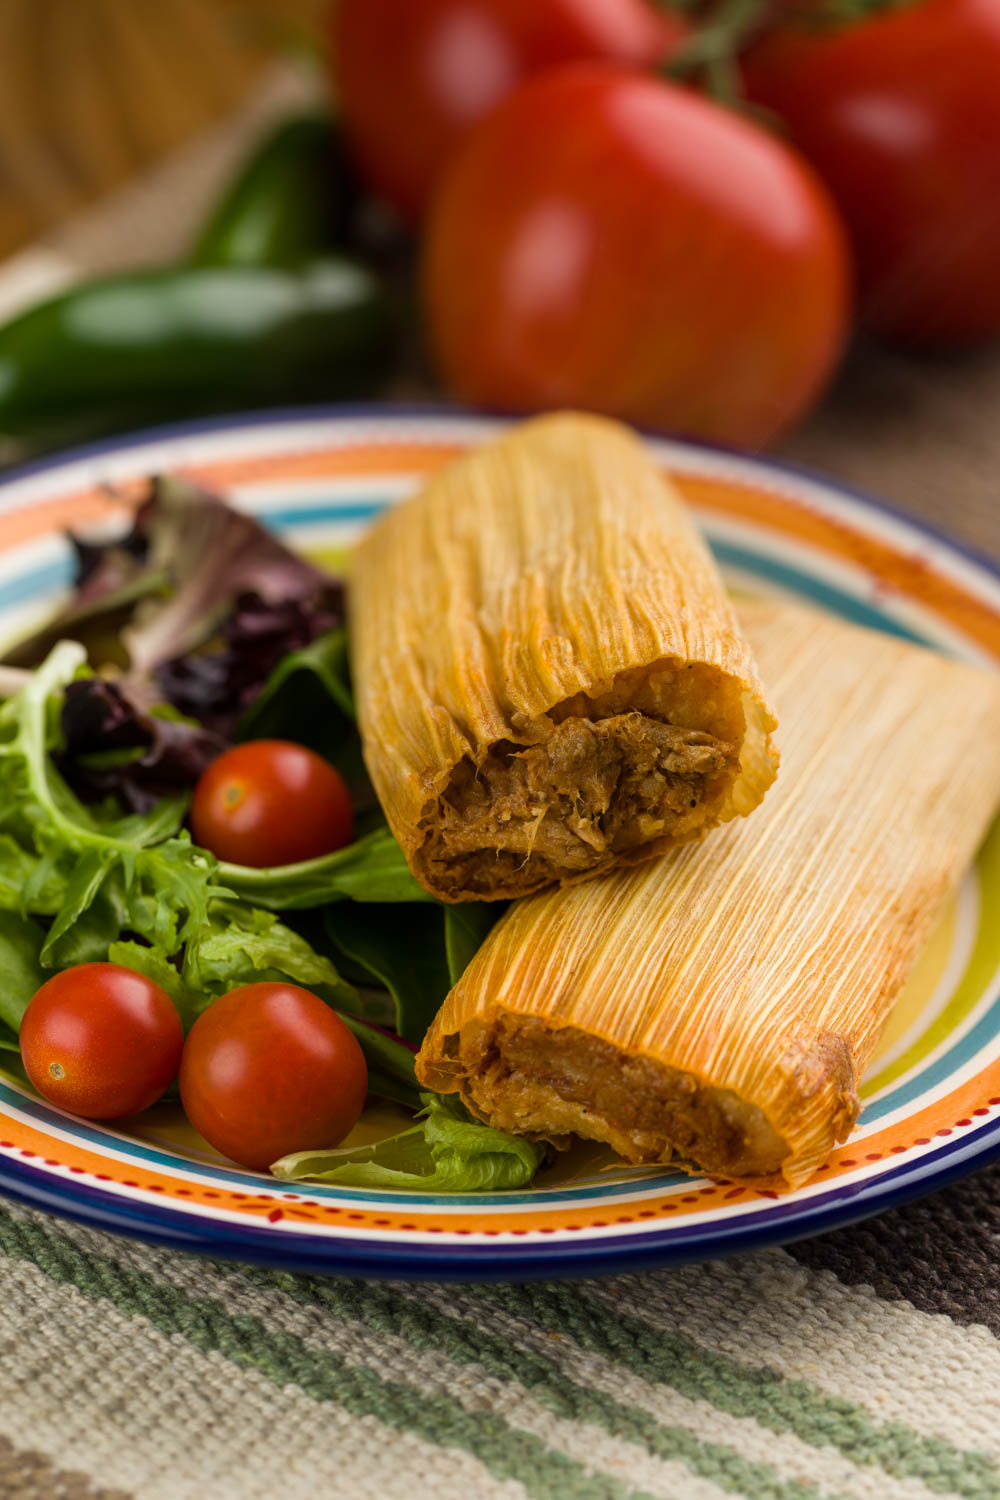 Beef tamales with salad